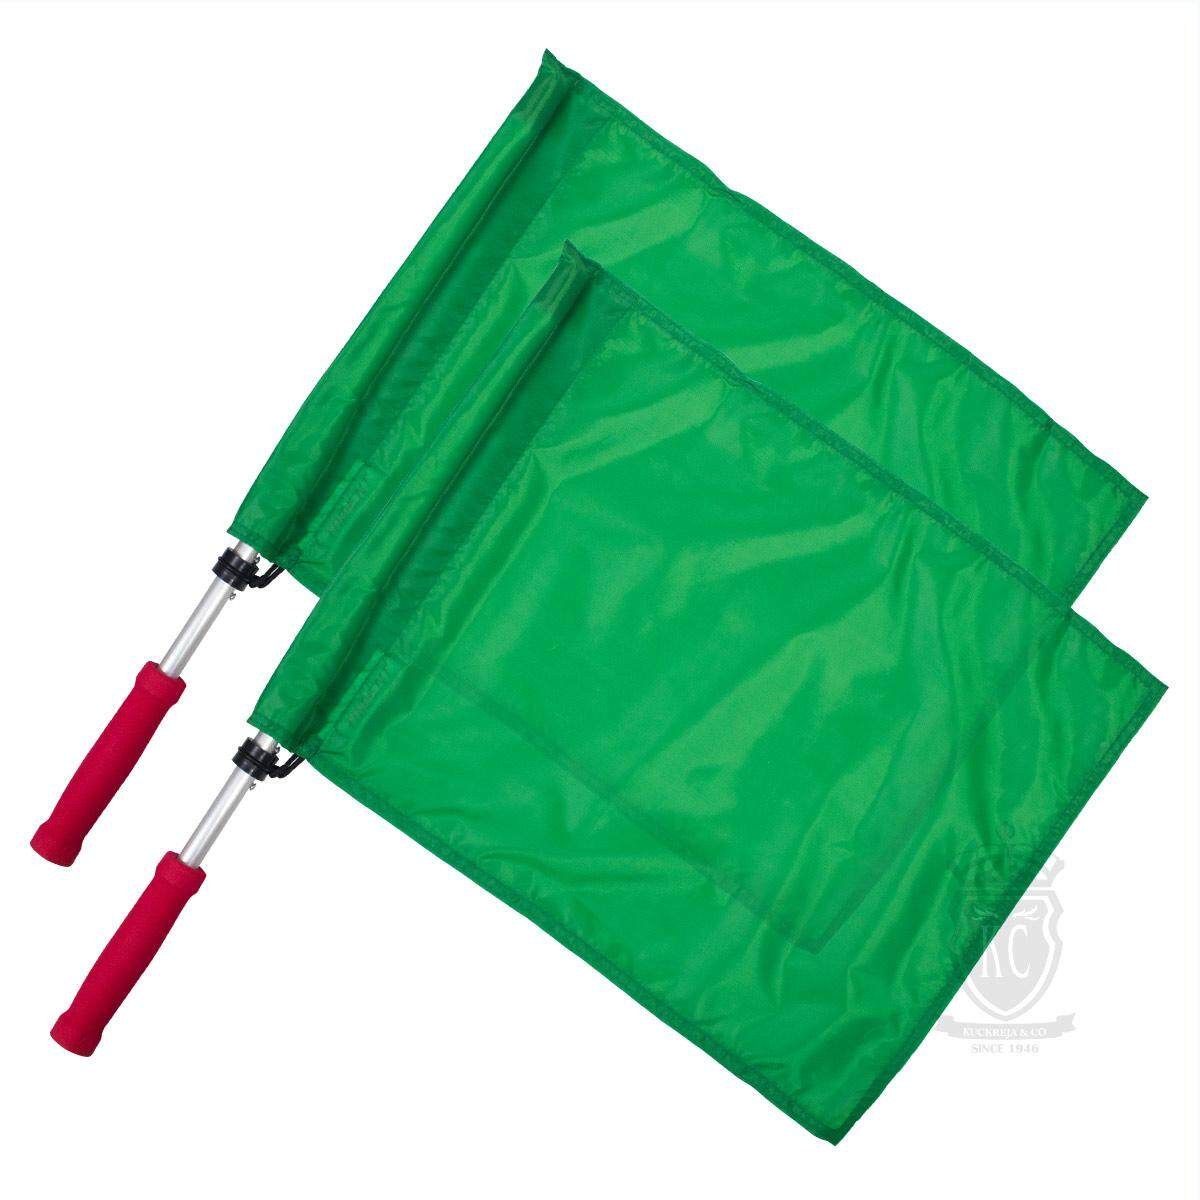 Trident Judges Flag - Green By Kuckreja And Co..